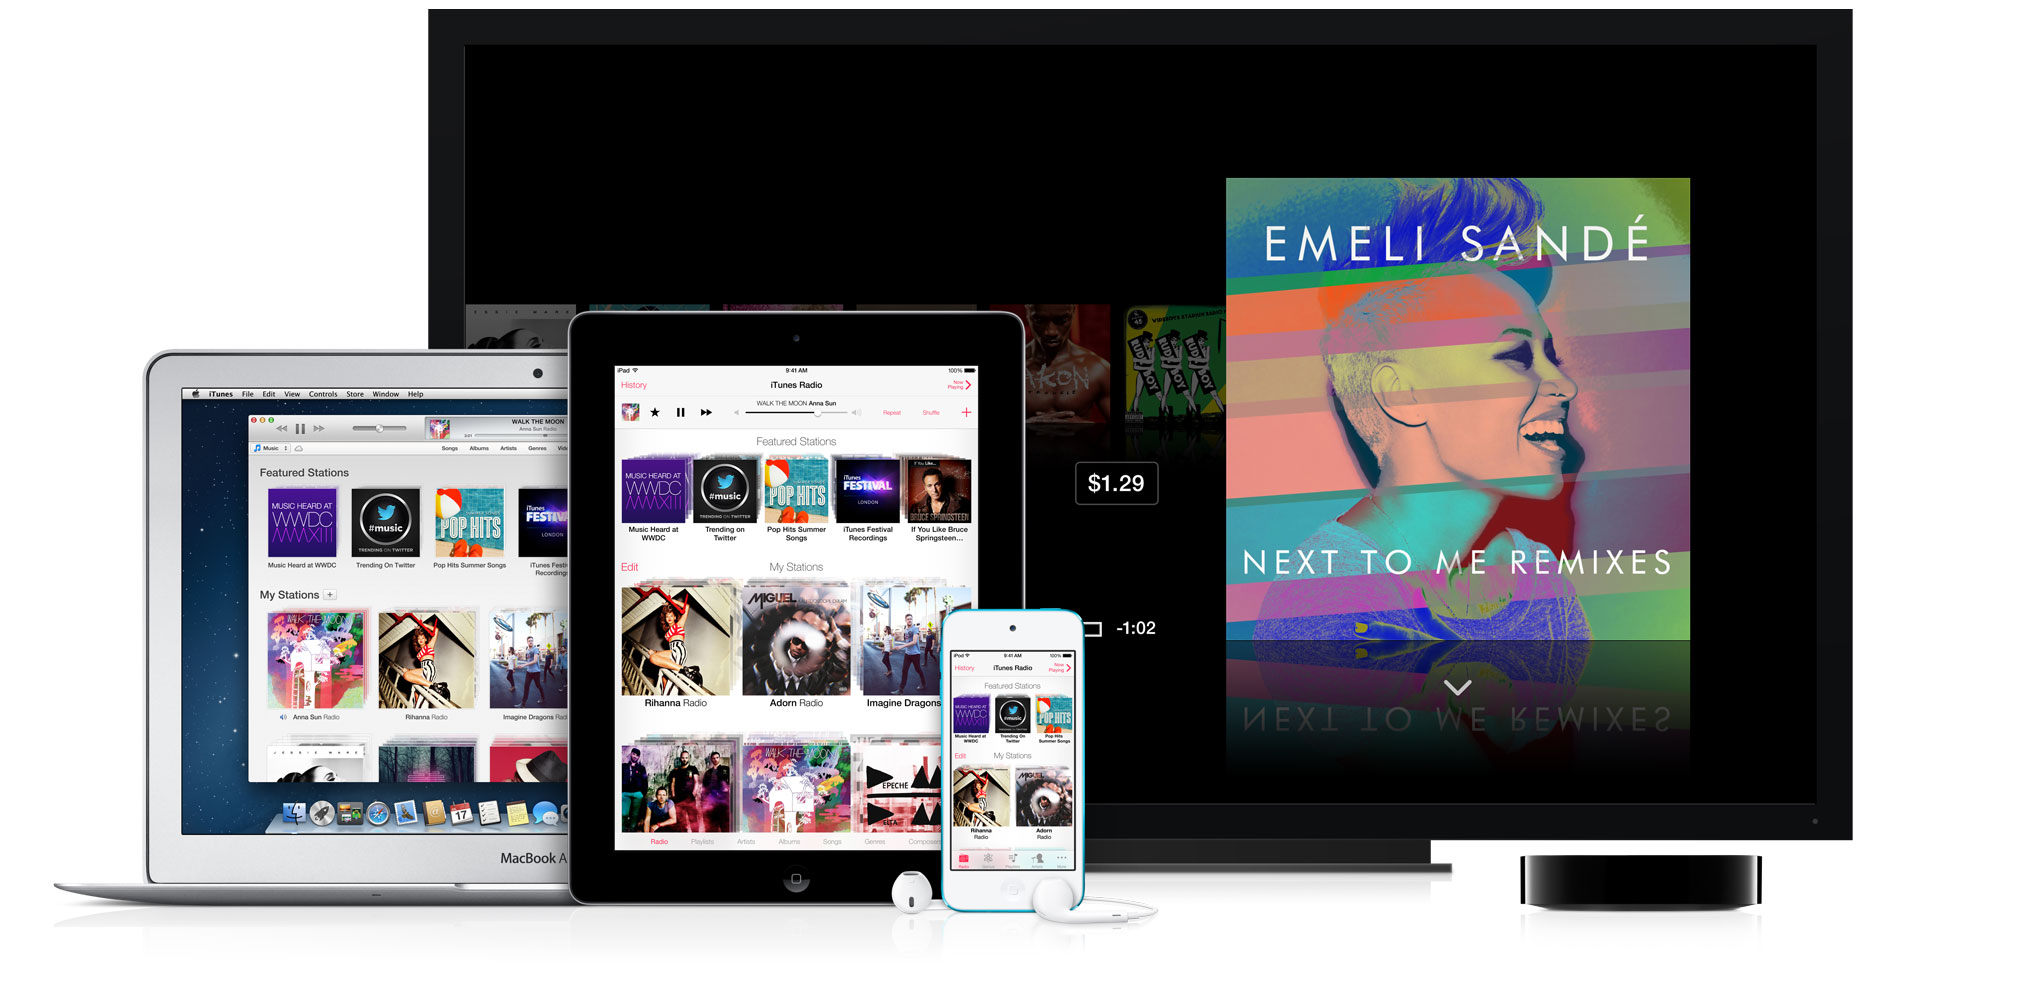 iOS 7 Music app on iPad (Apple web site teaser 001)